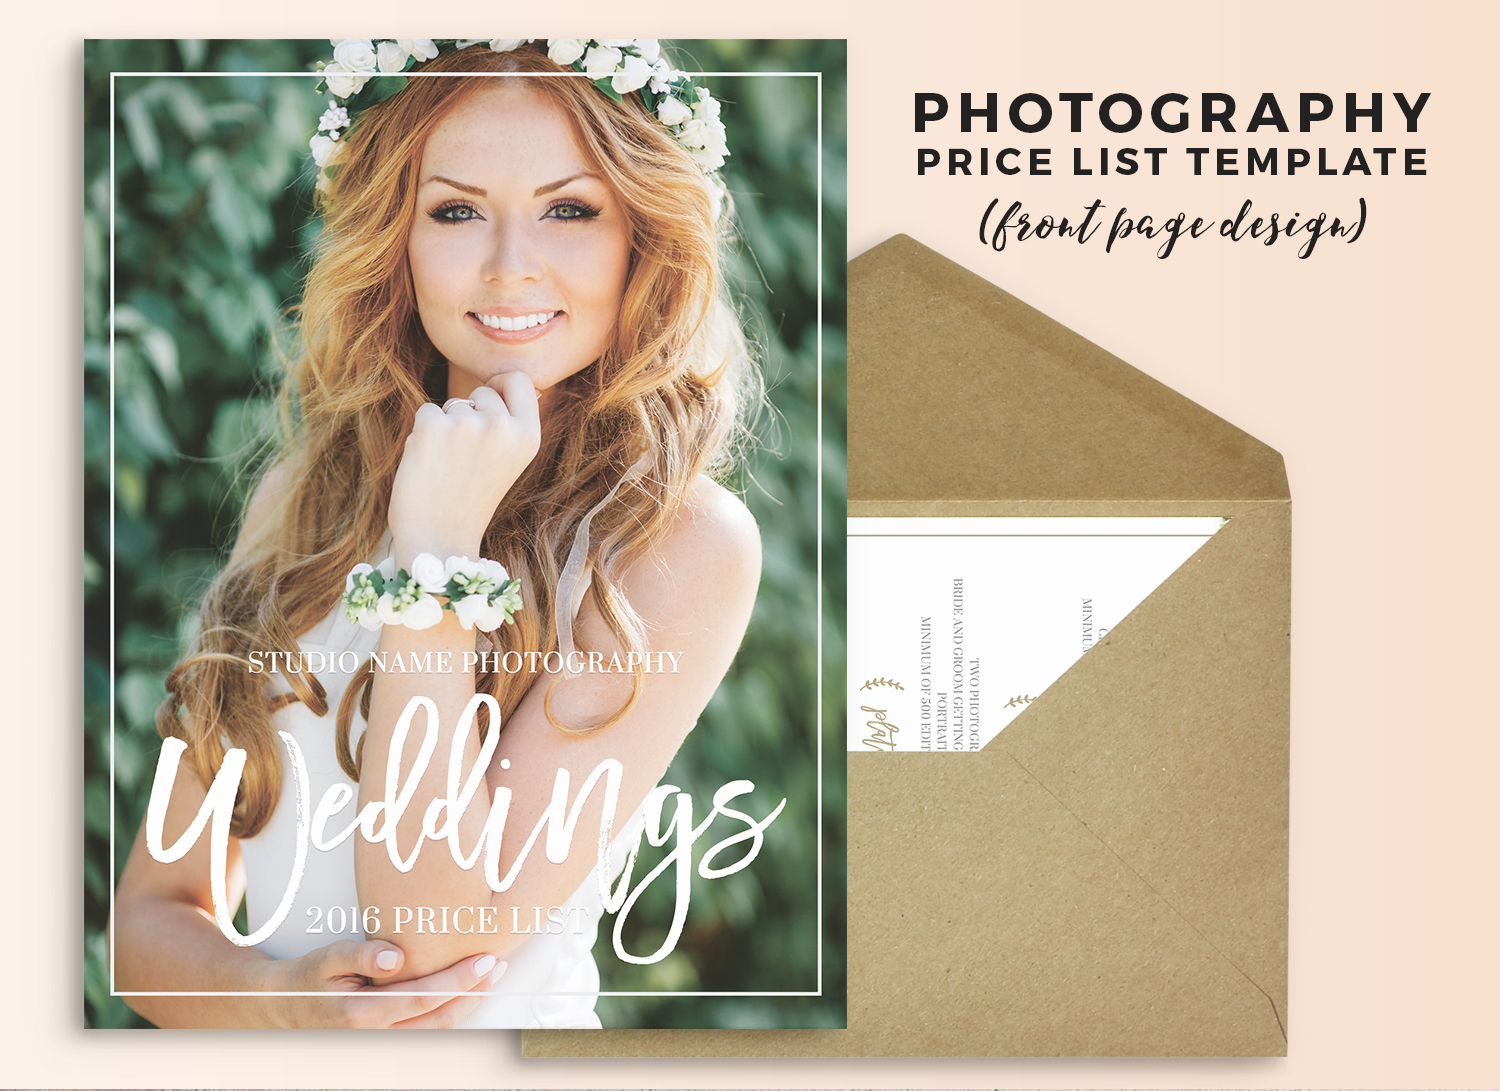 Photoshop Marketing Template - Pricing Guide